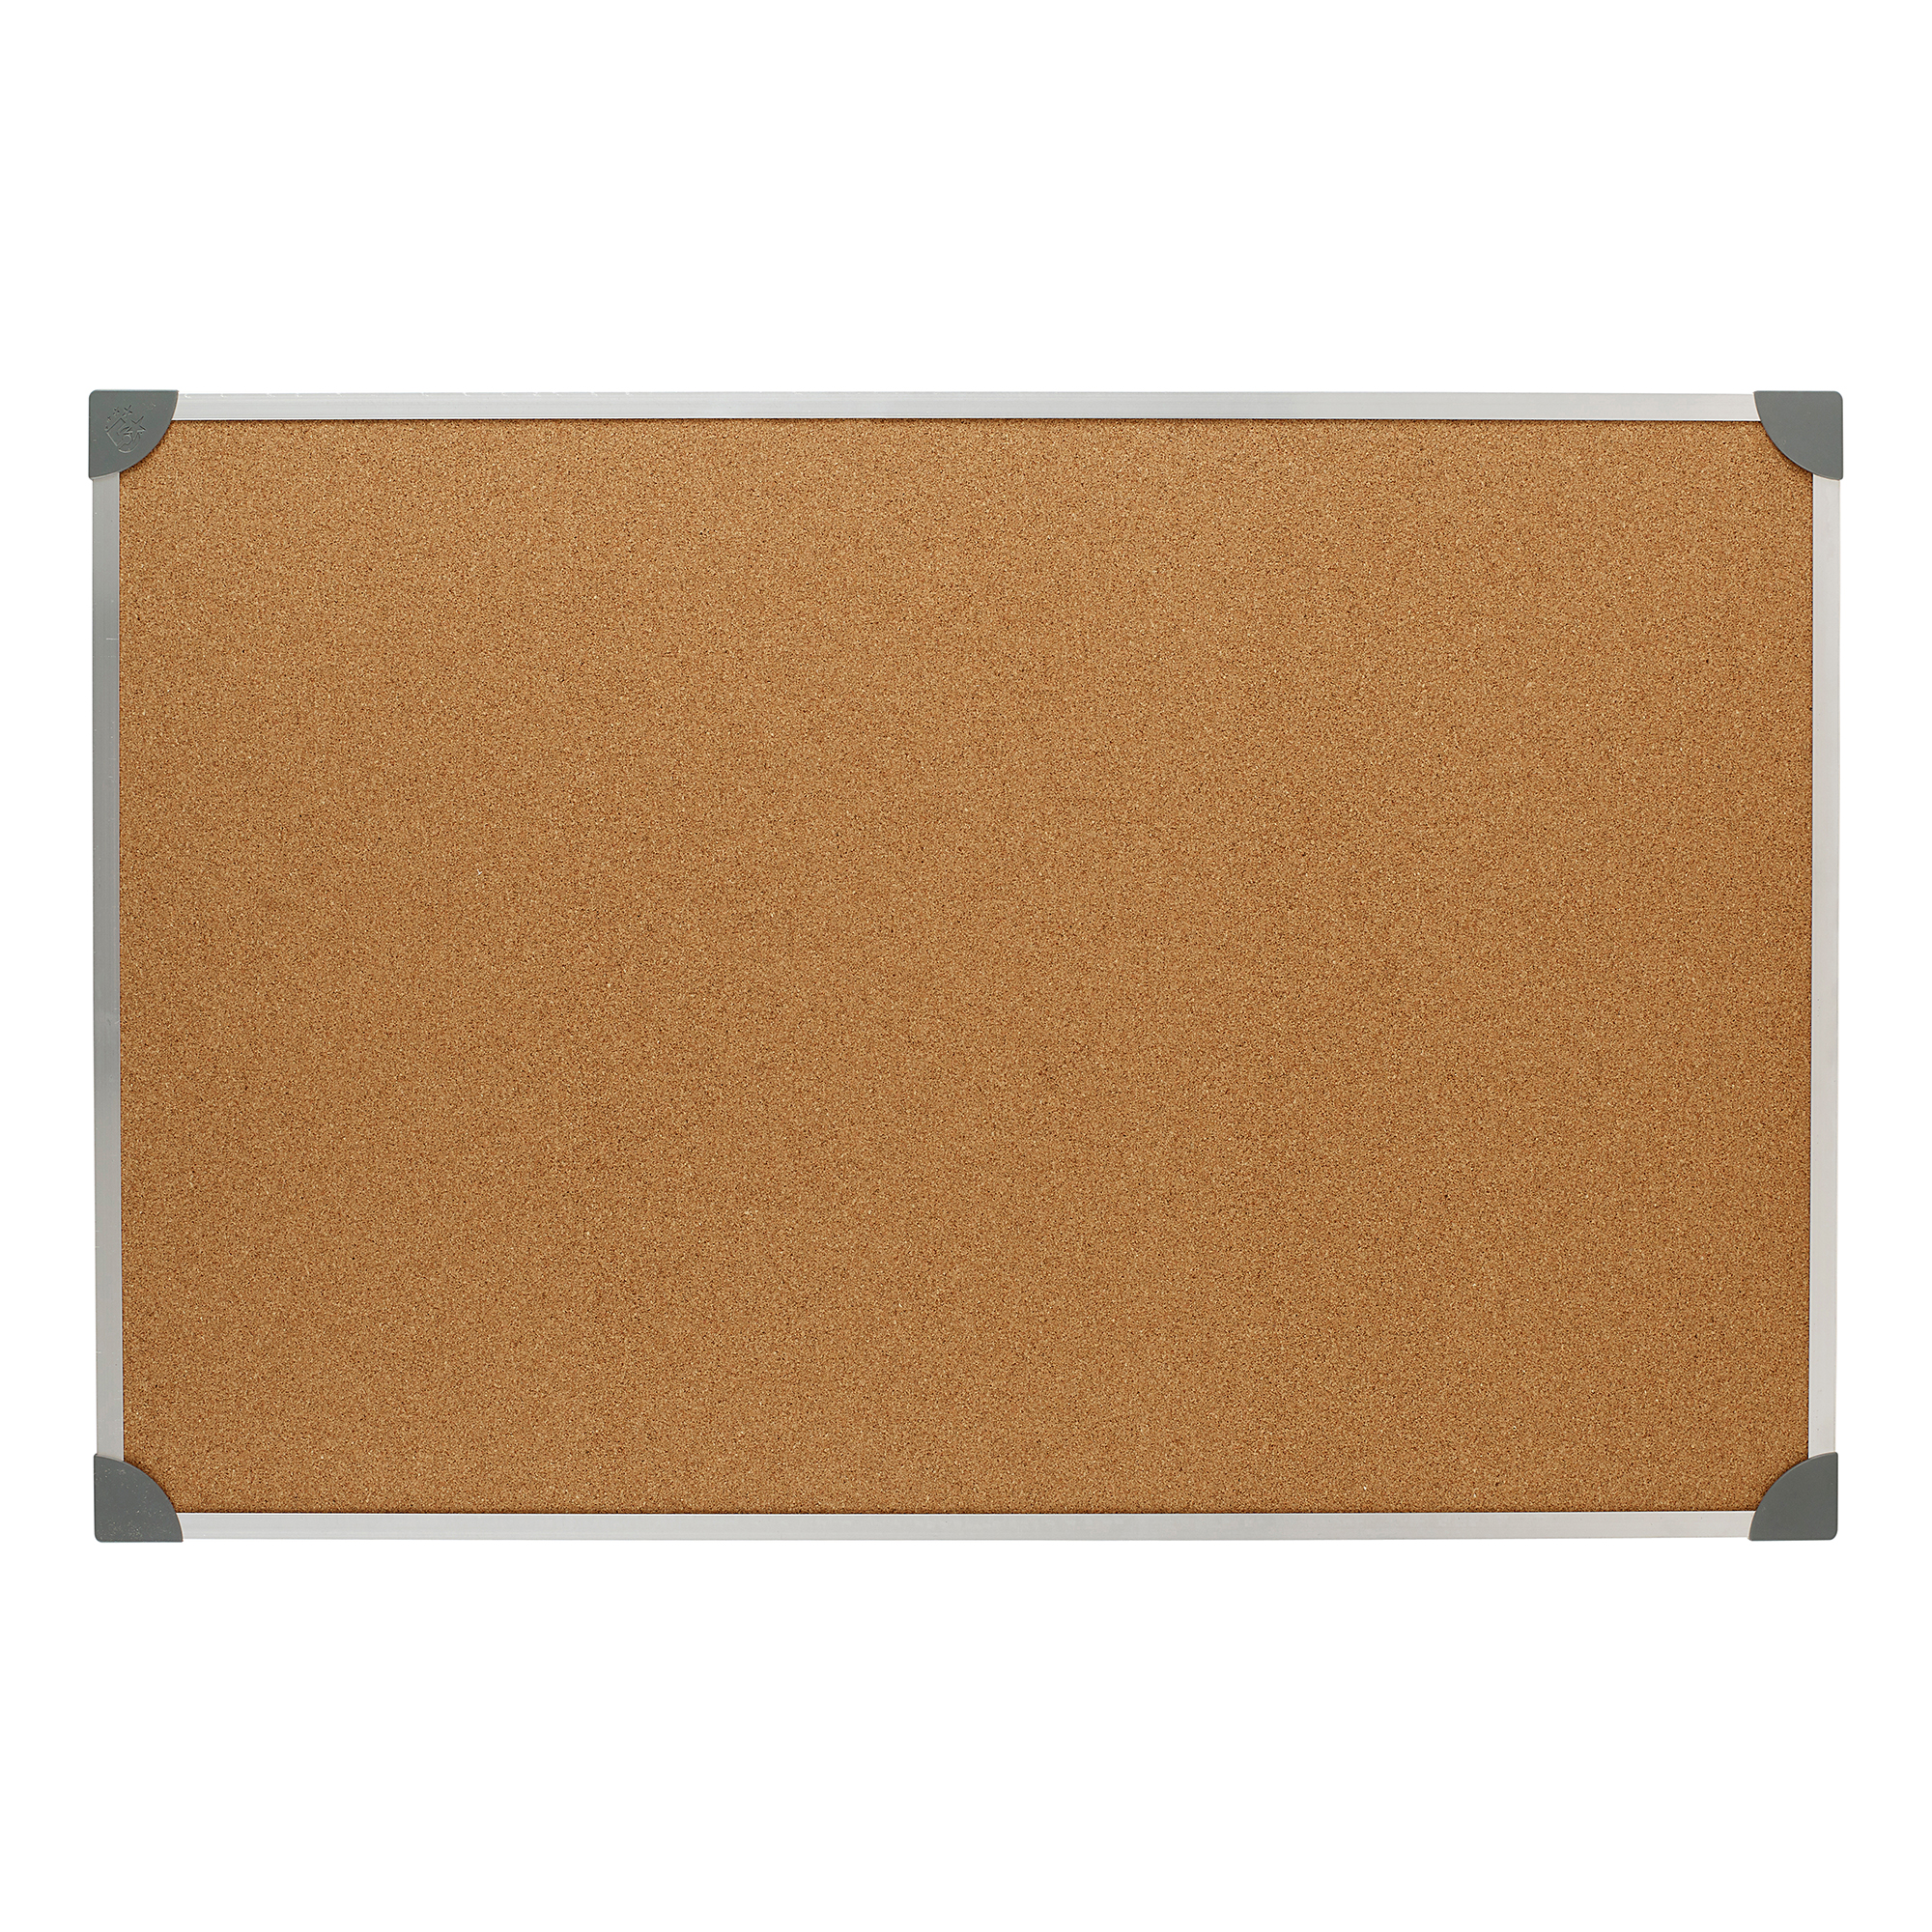 Cork 5 Star Office Cork Board with Wall Fixing Kit Aluminium Frame W900xH600mm